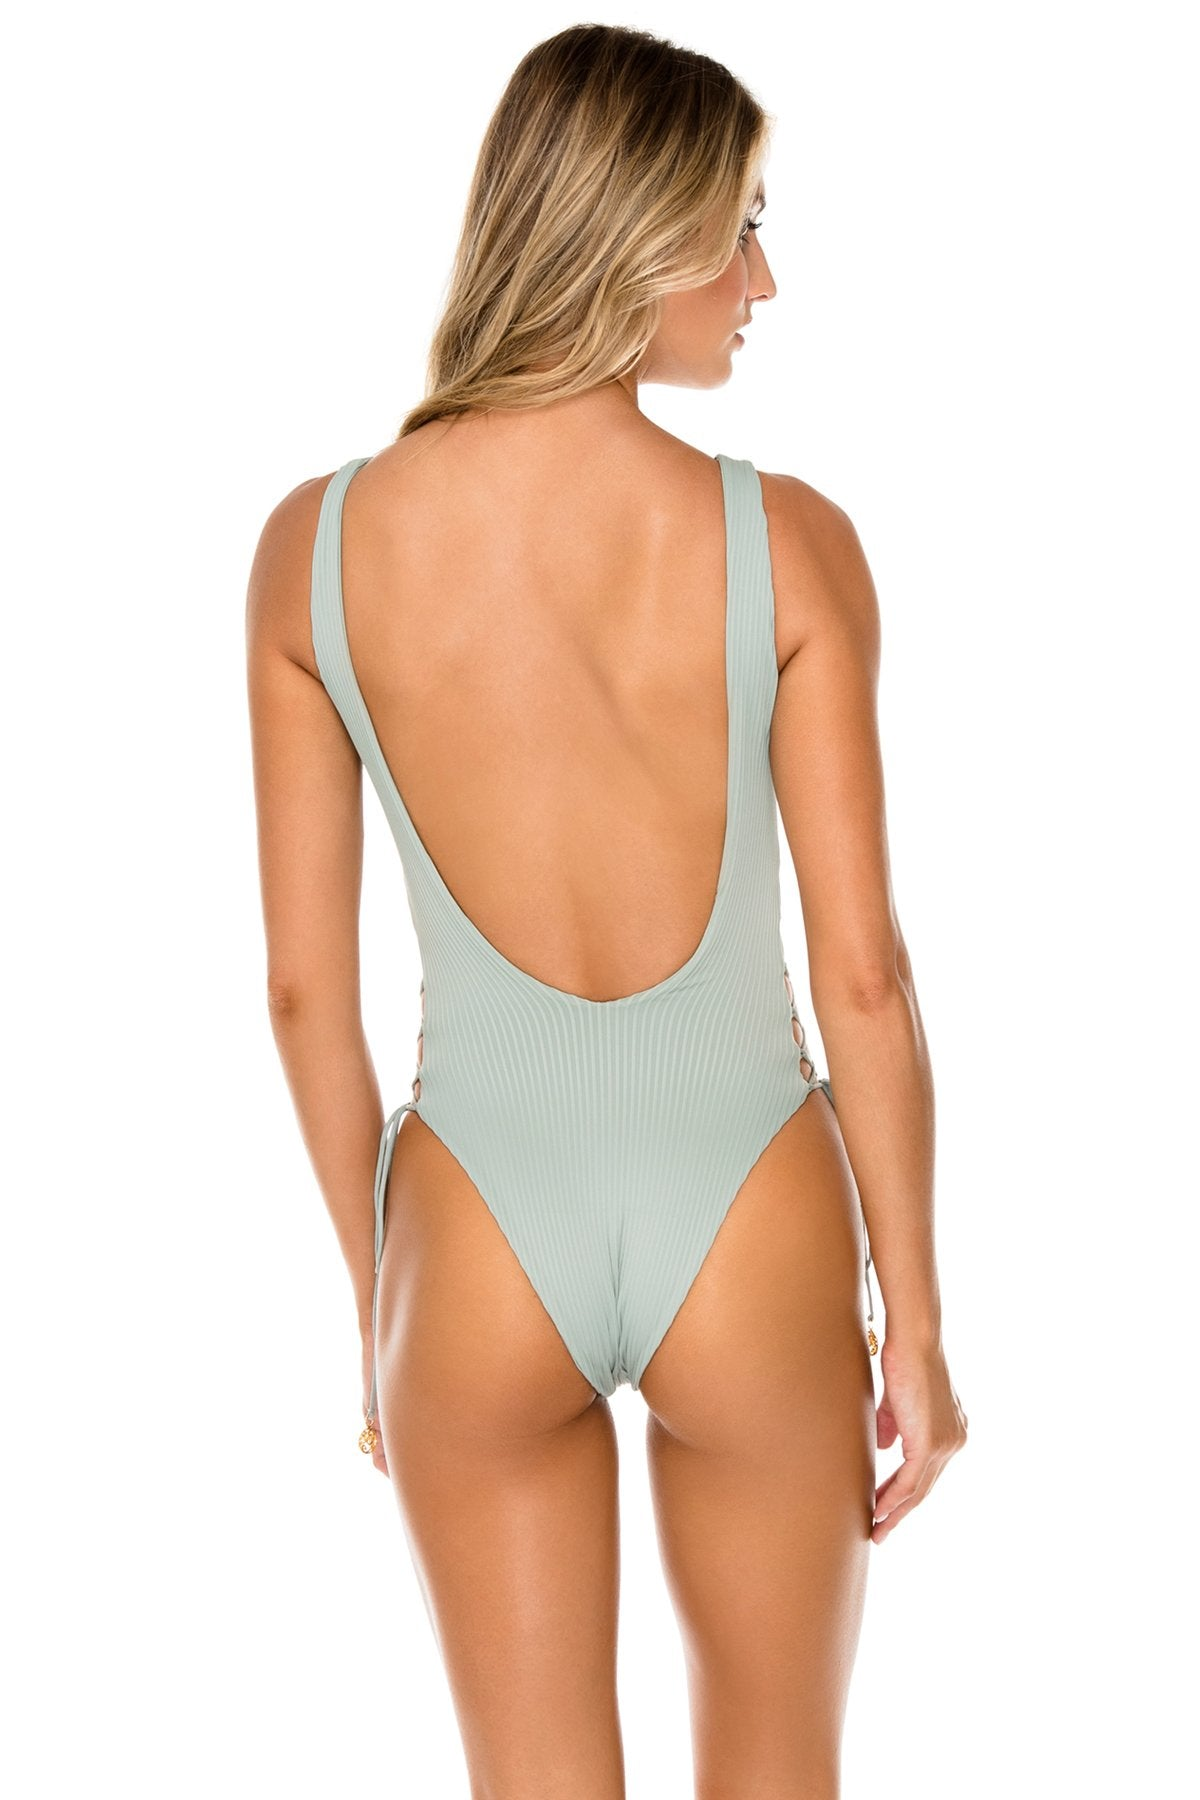 ORILLAS DEL MAR - Open Side One Piece Bodysuit • Jardines